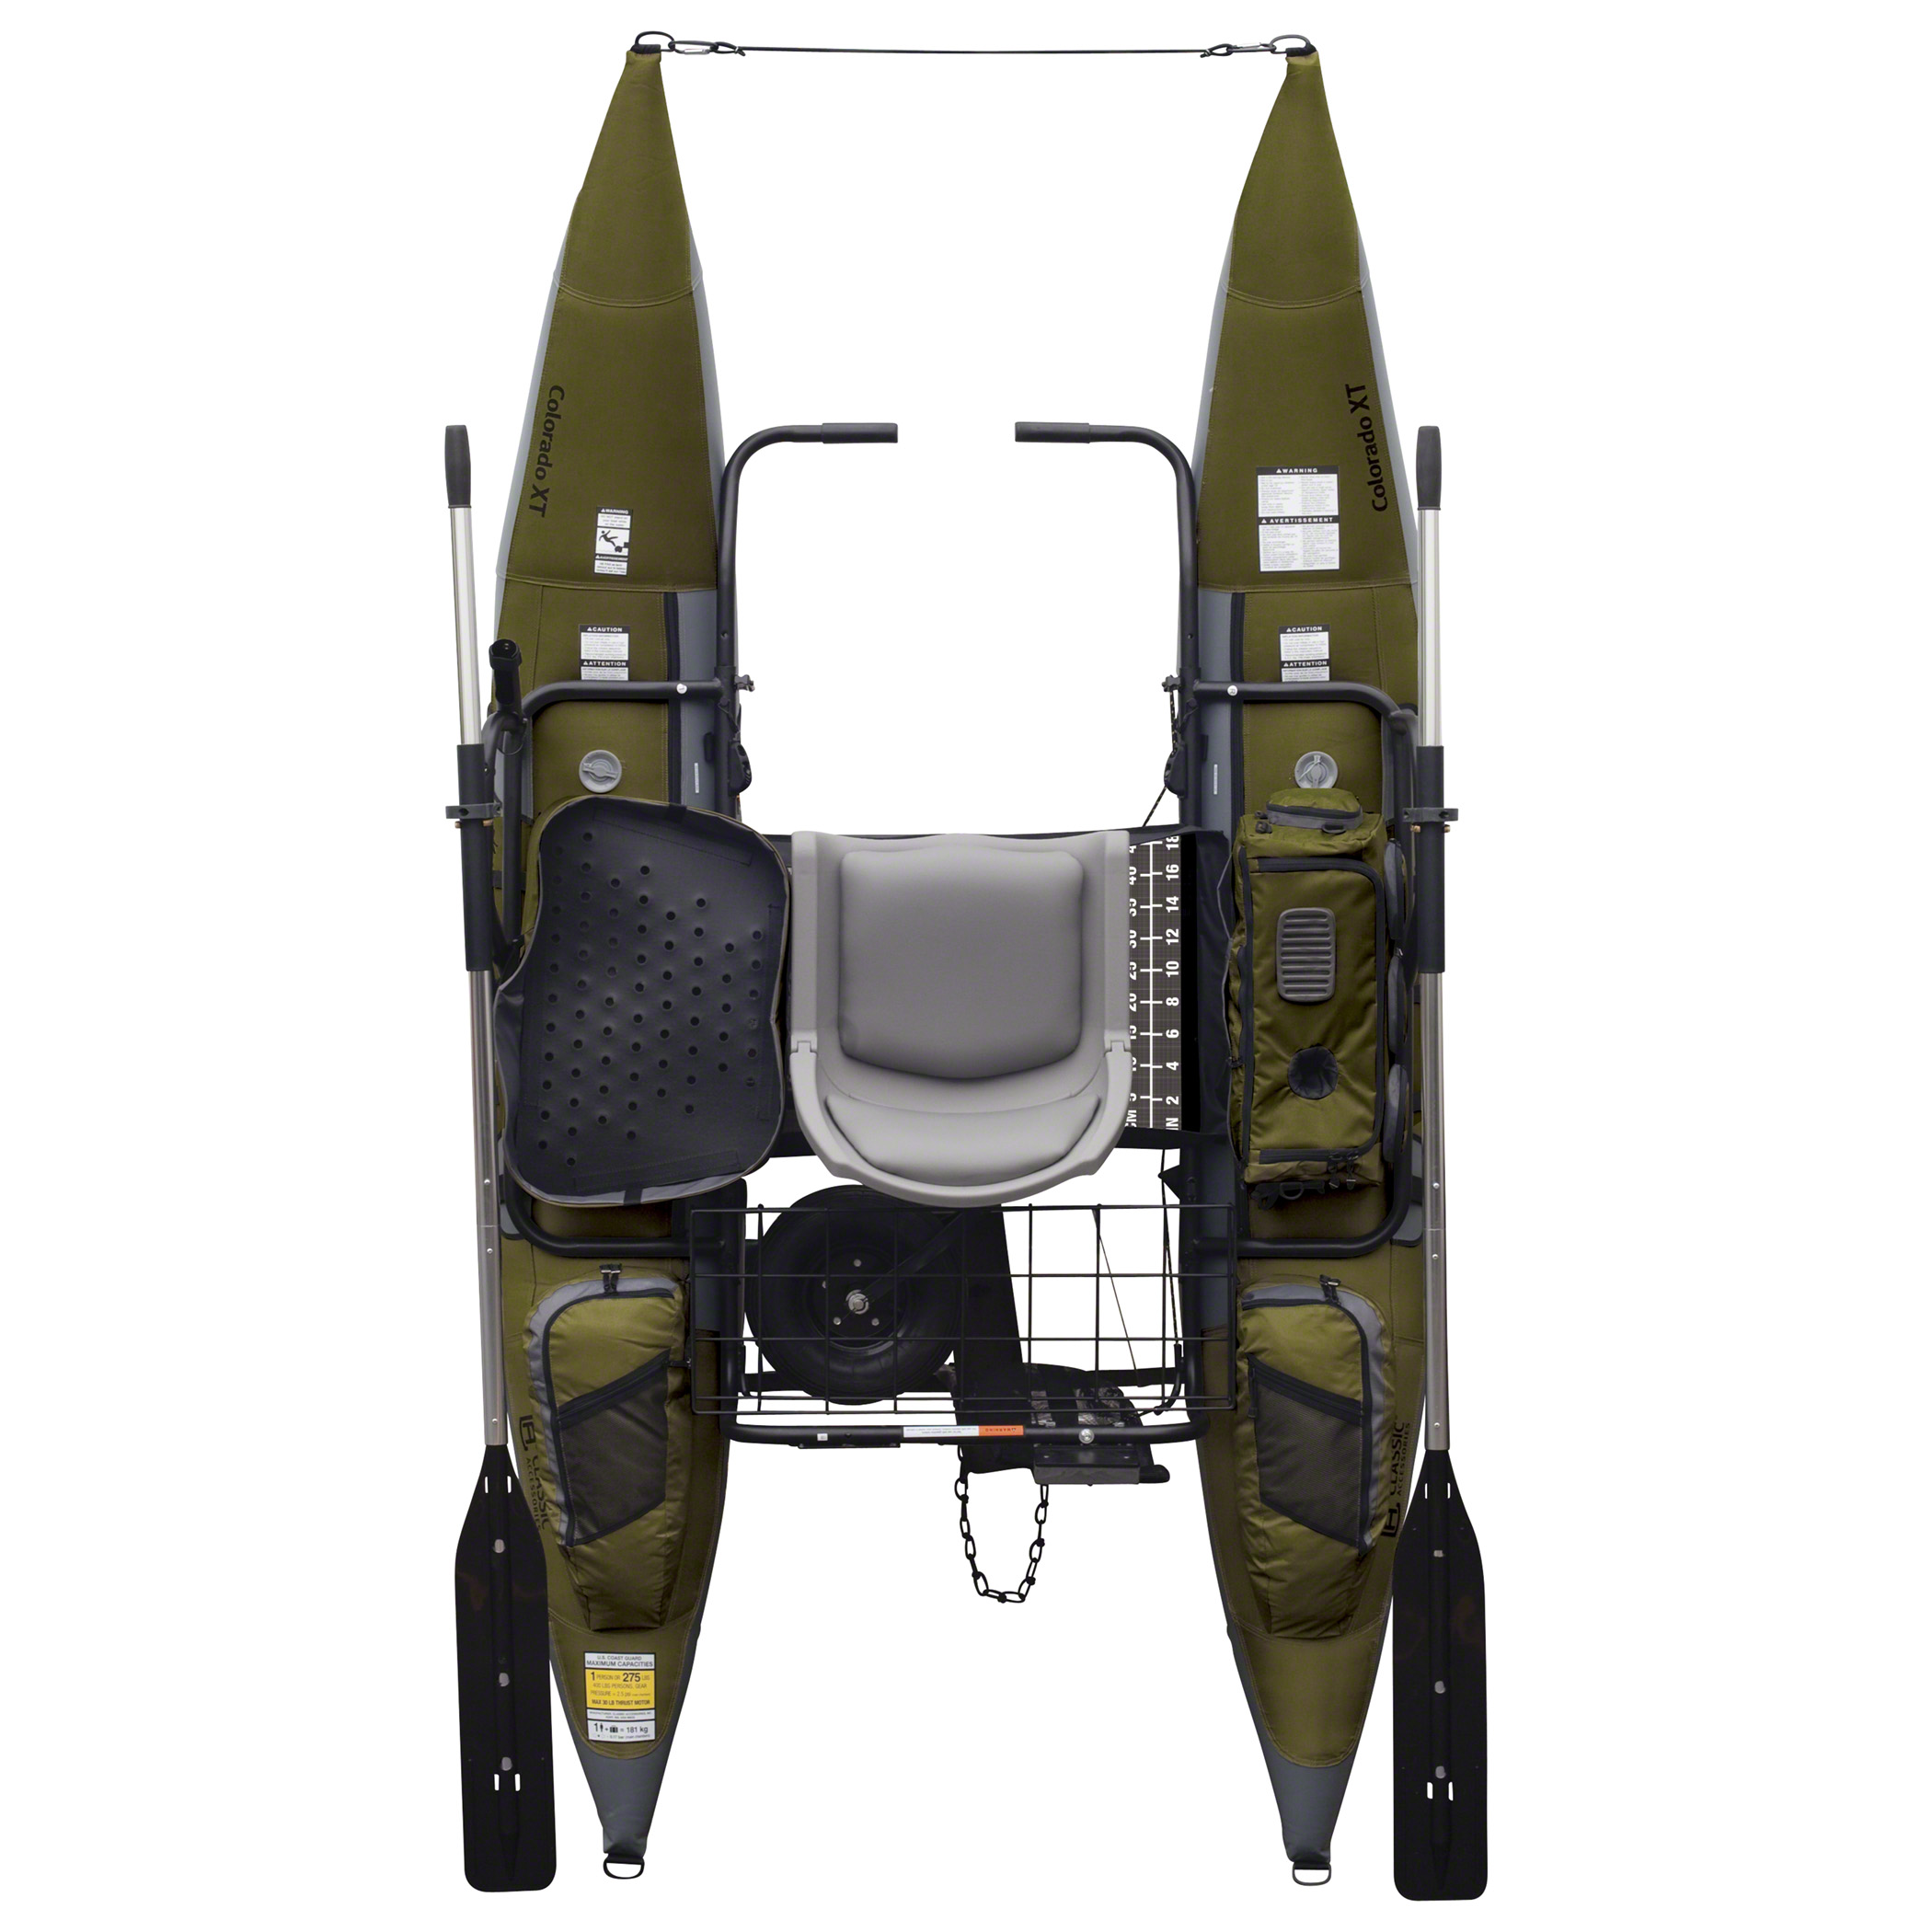 Classic Accessories Colorado Xt 9ft Pontoon Boat: Product Features: